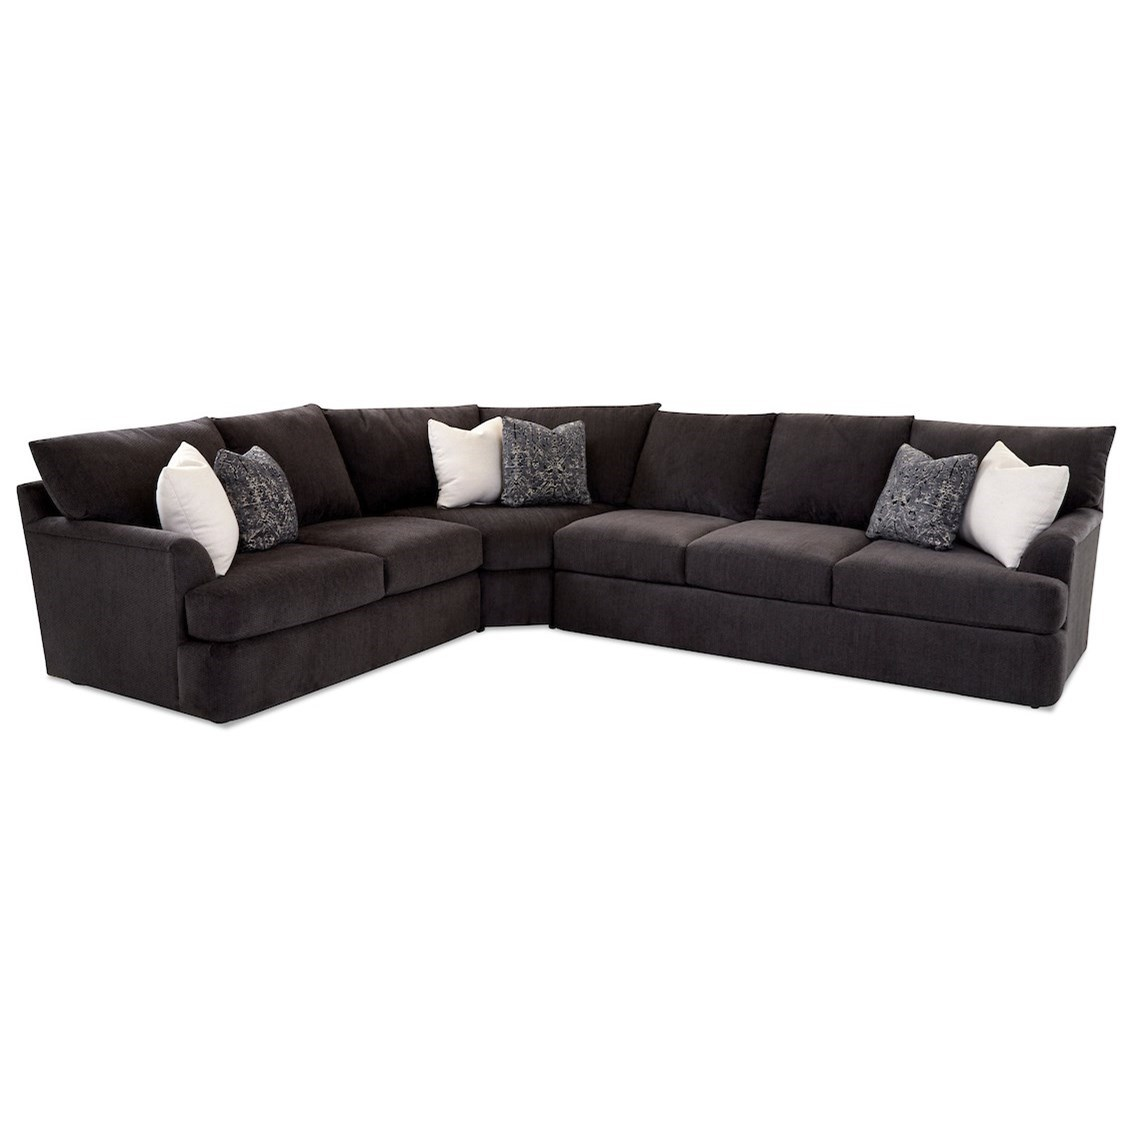 Findley 3-Piece Sectional Sofa w/ RAF Sofa by Klaussner at Johnny Janosik